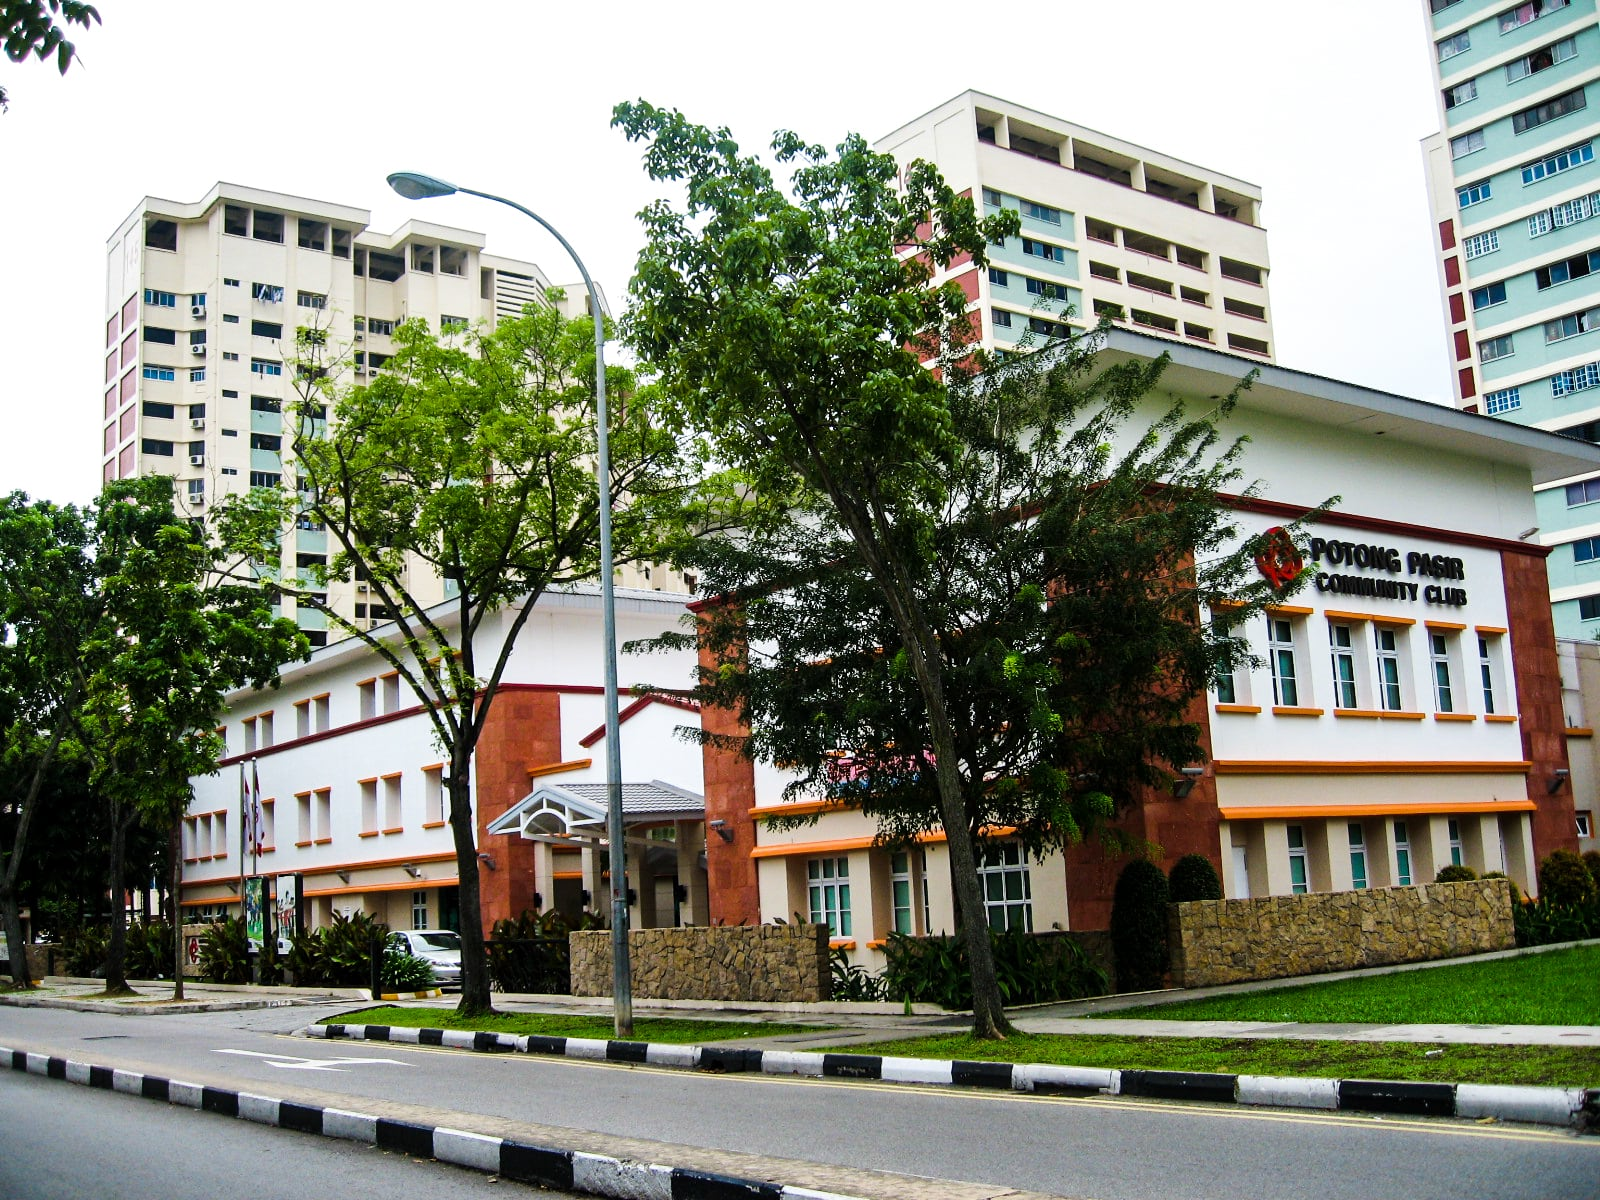 Potong Pasir district 13